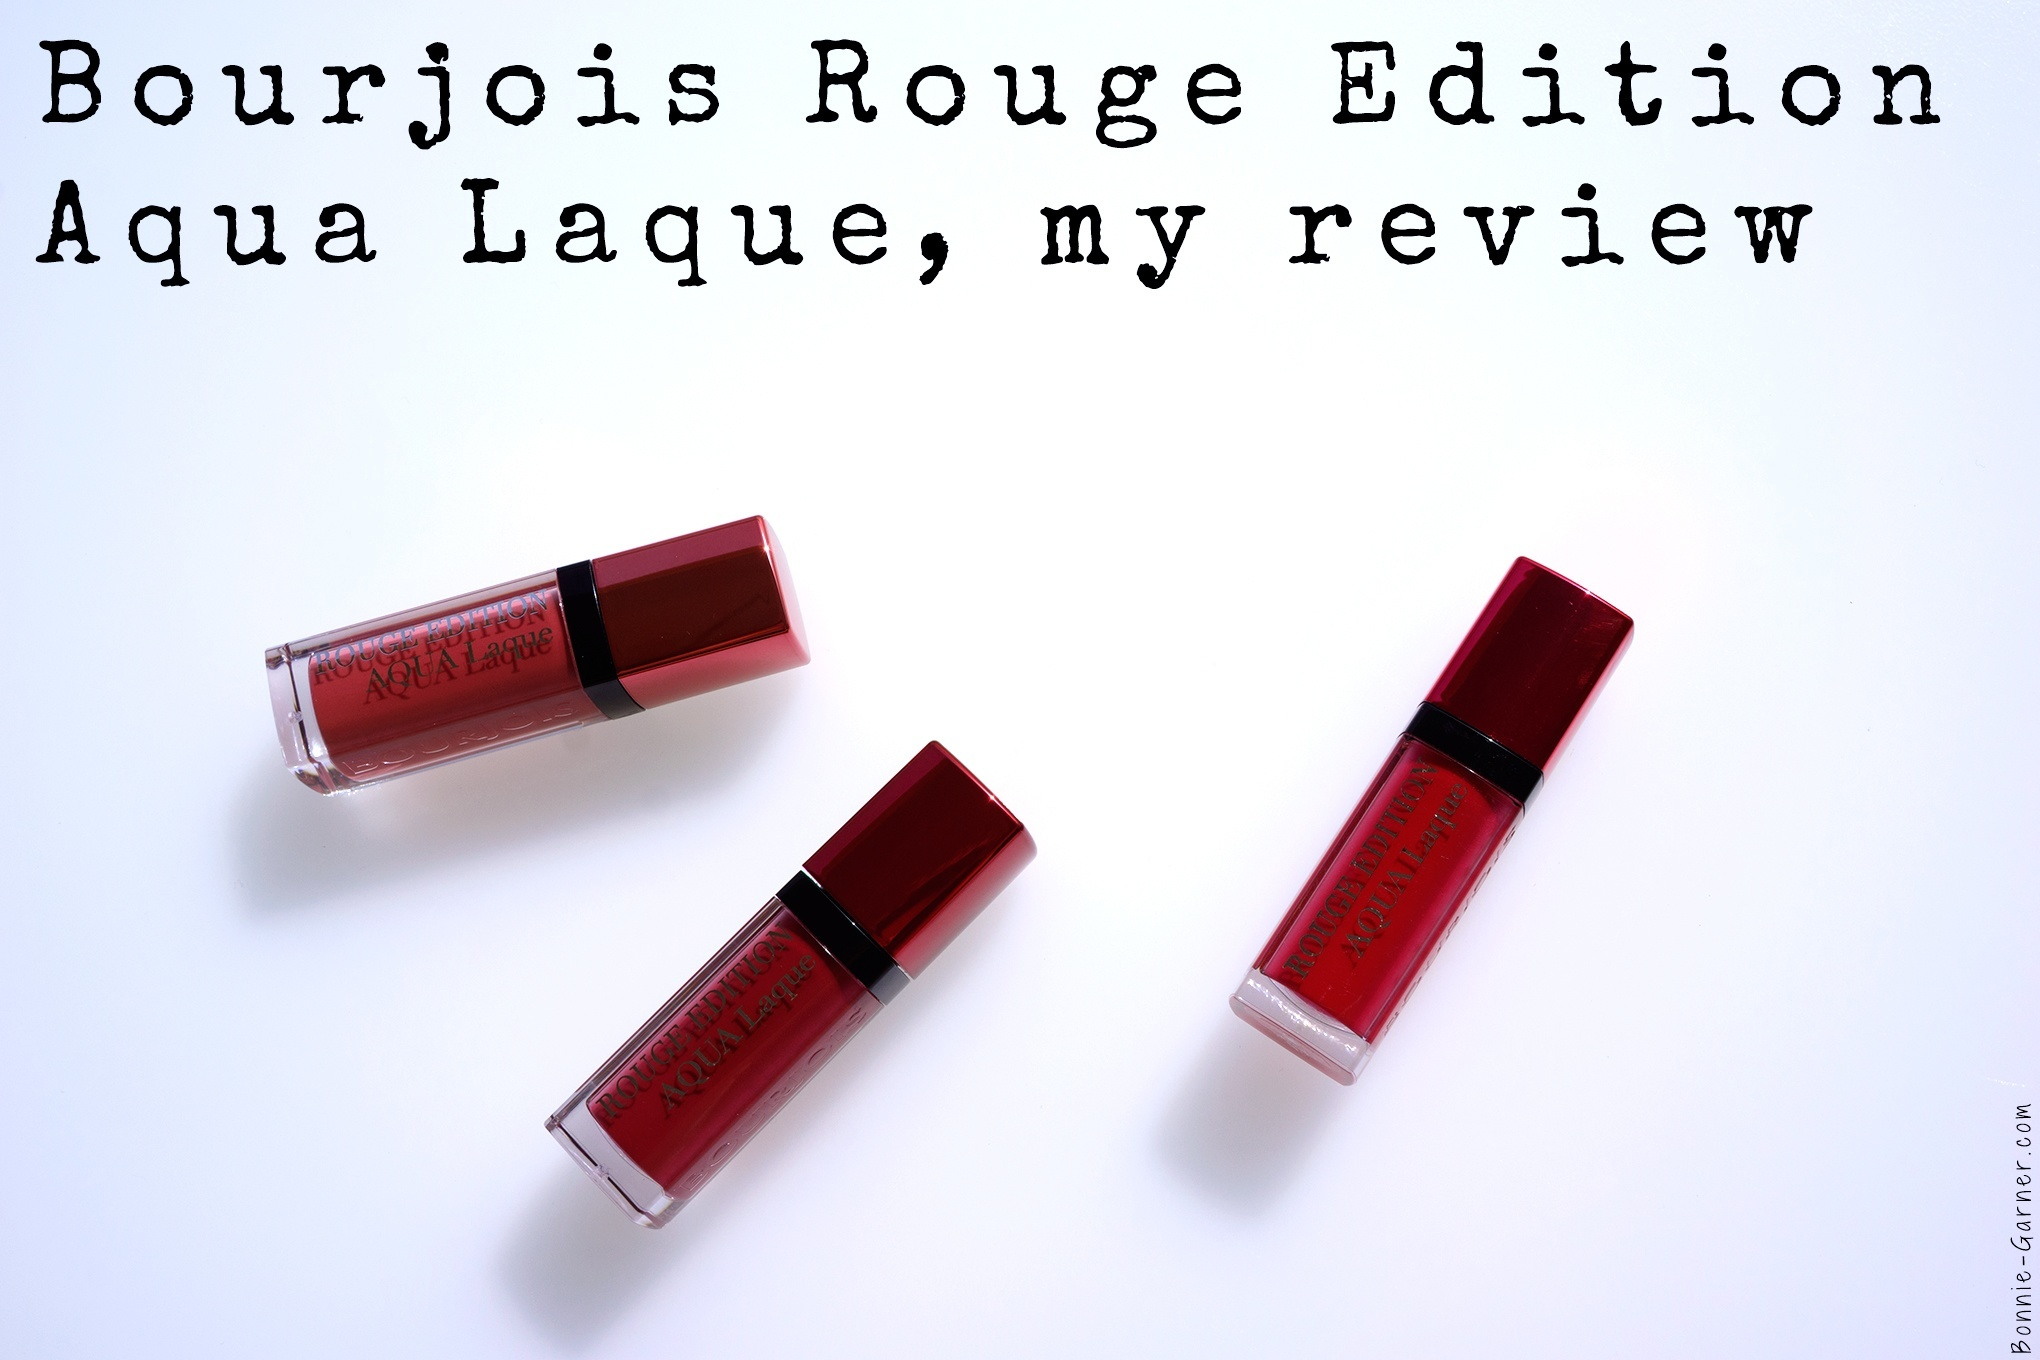 Bourjois Rouge Edition Aqua Laque, my review